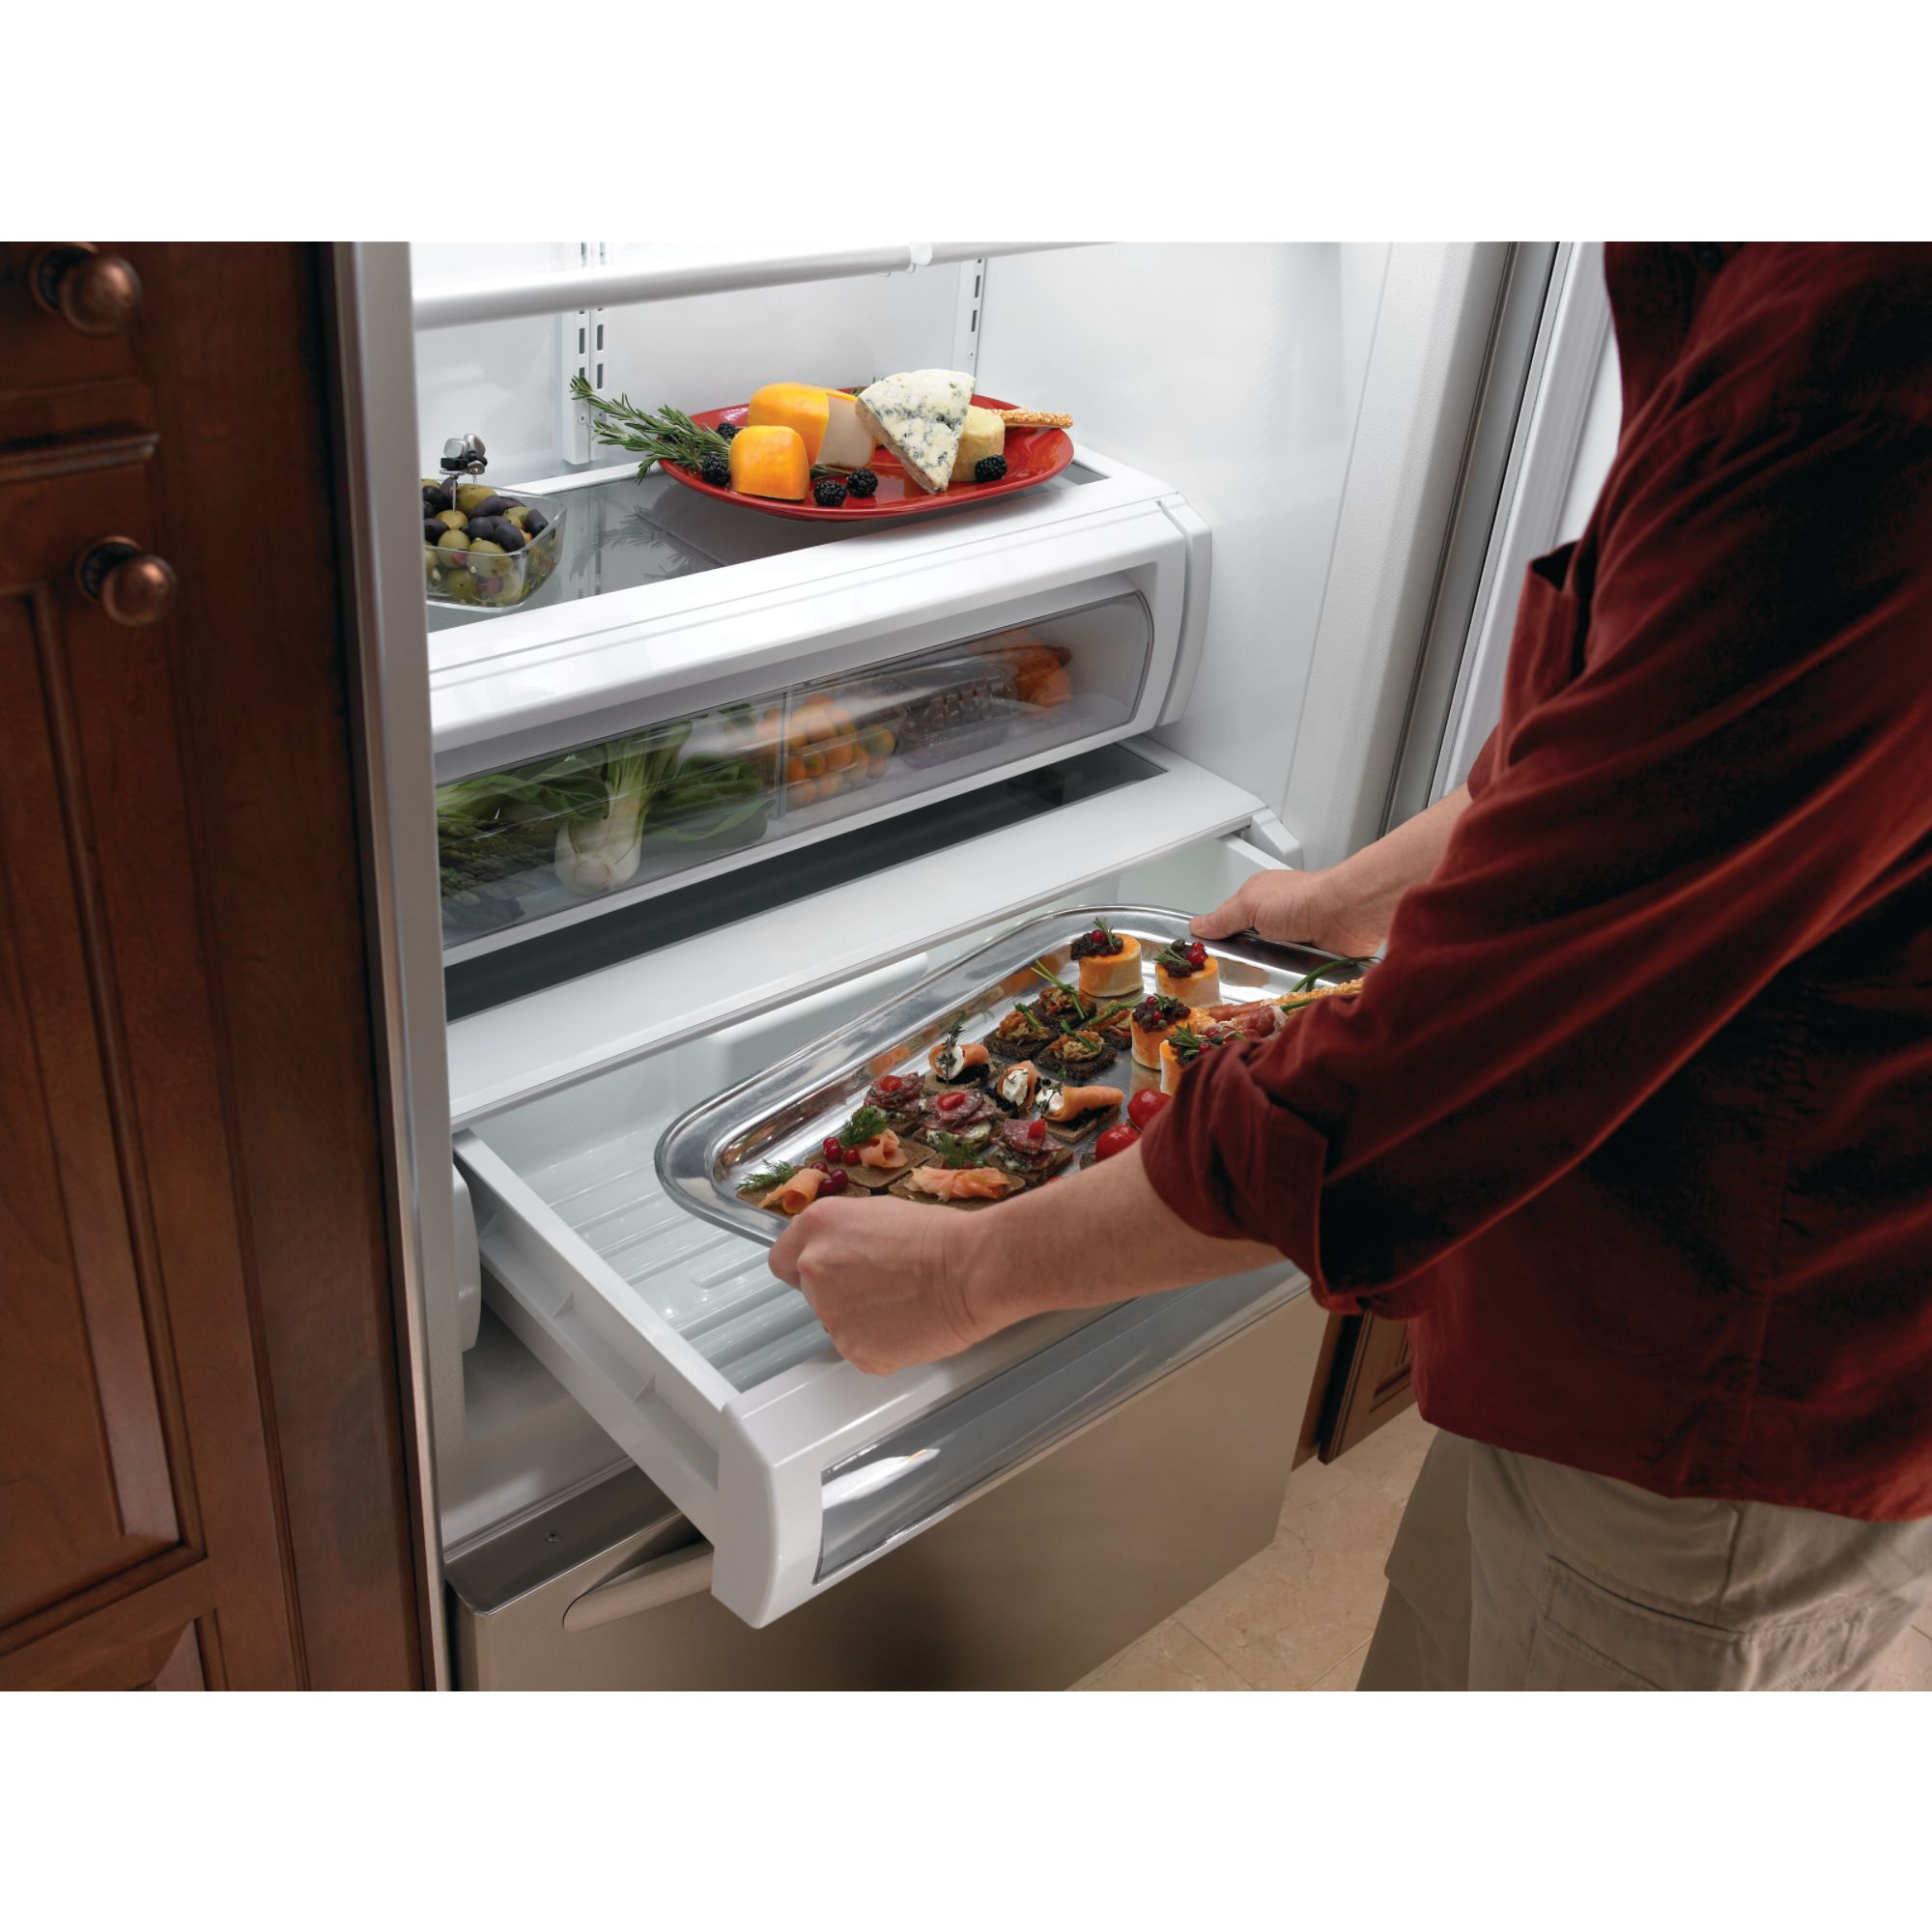 KitchenAid 20.5 cu. ft. Built-In Bottom Freezer Refrigerator